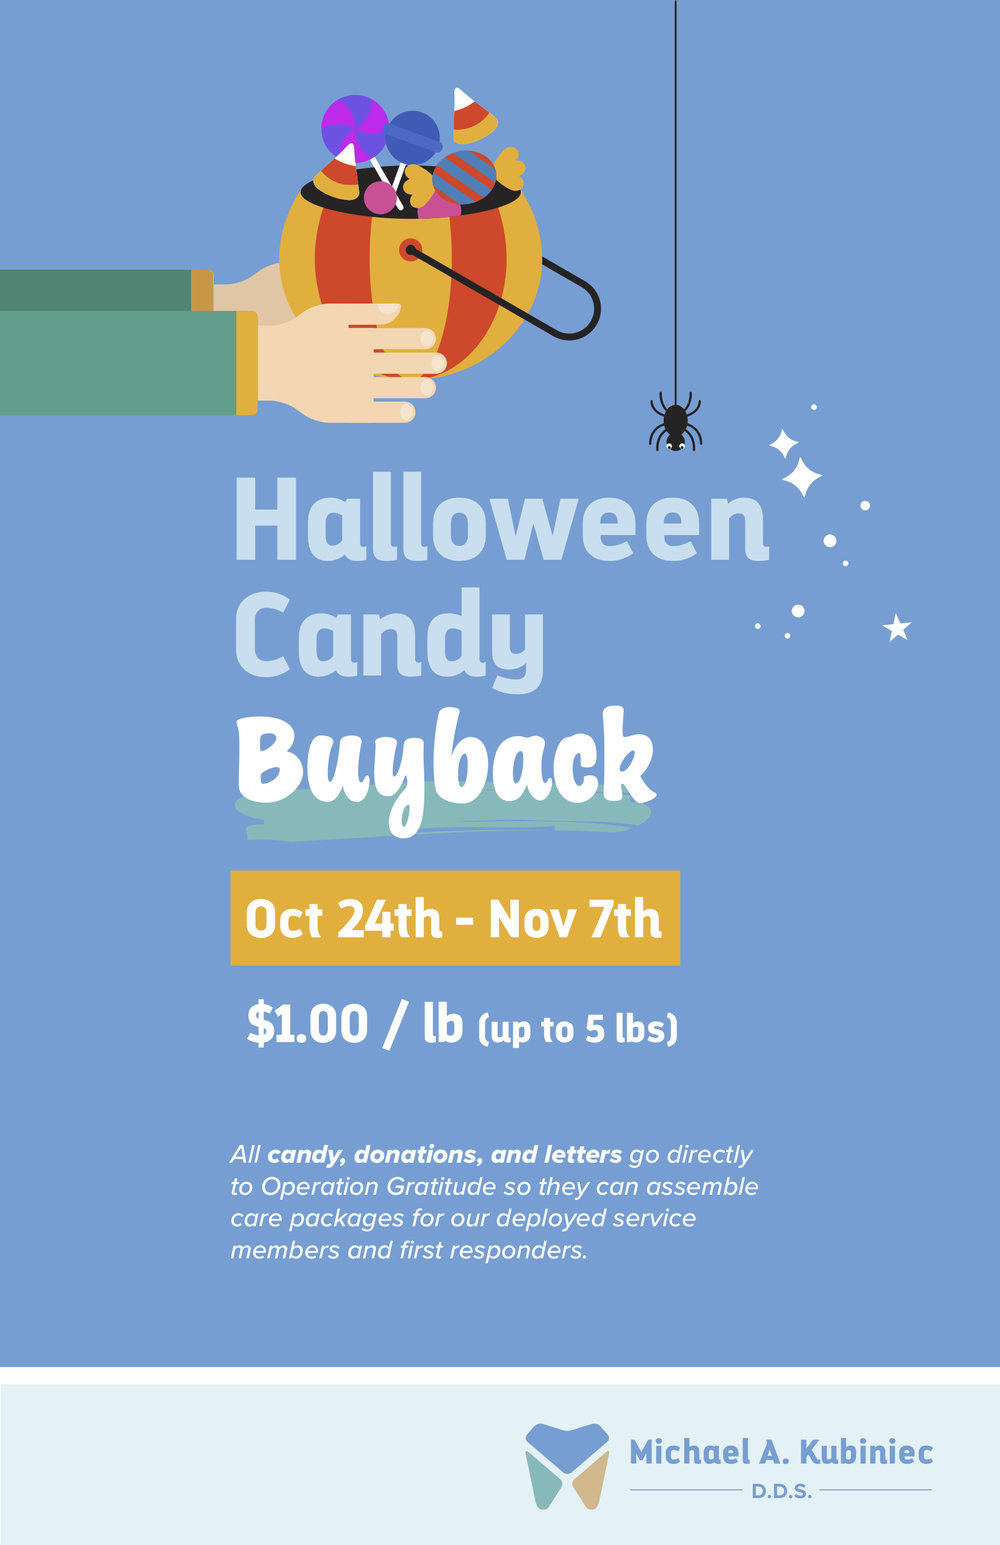 CandyBuyback _11x17Poster.jpg